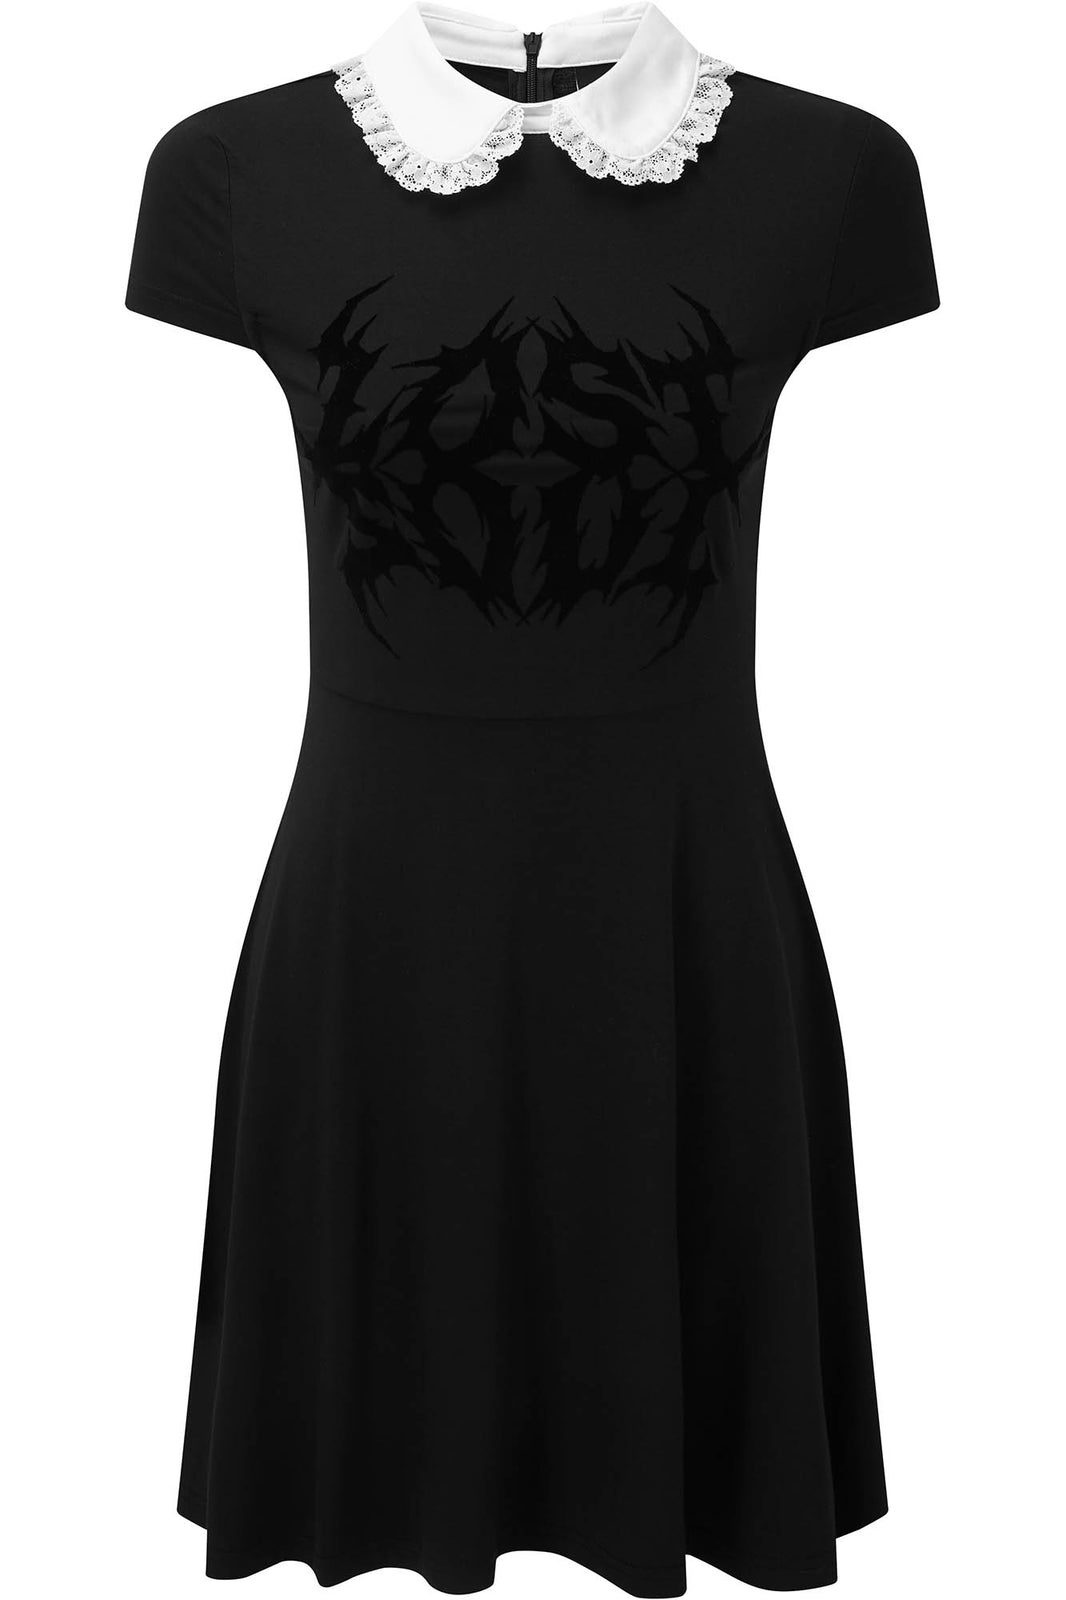 Slaysha Skater Dress